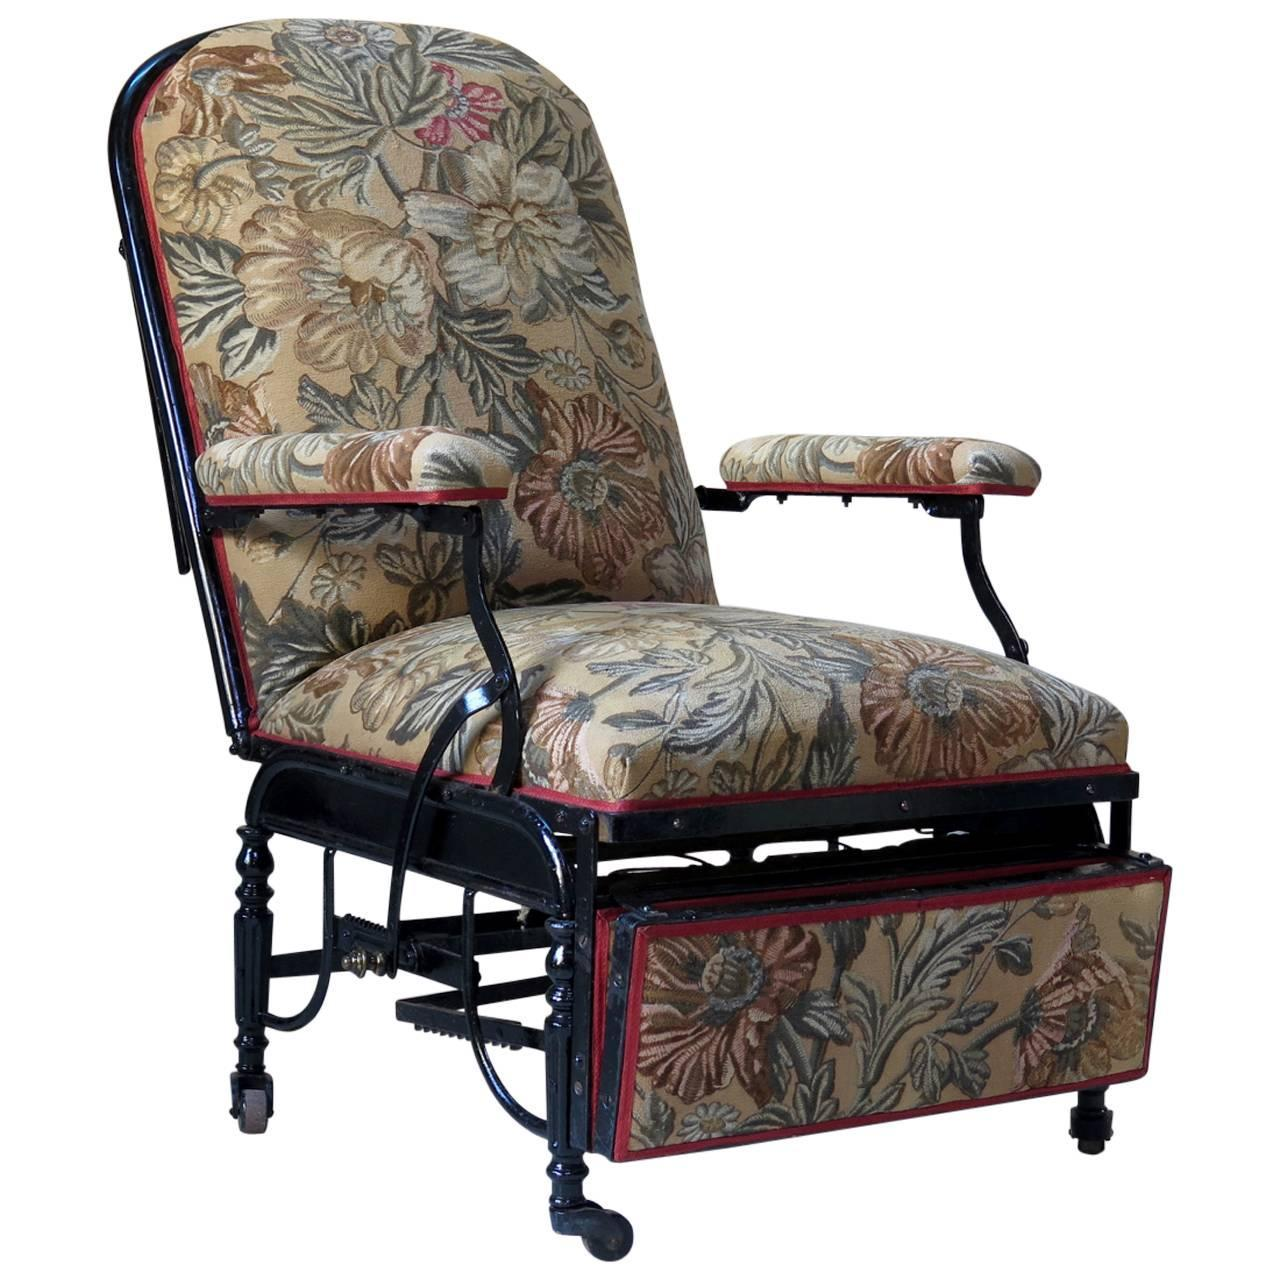 Adjustable napoleon iii armchair france circa 1880s for for Chaise longue france